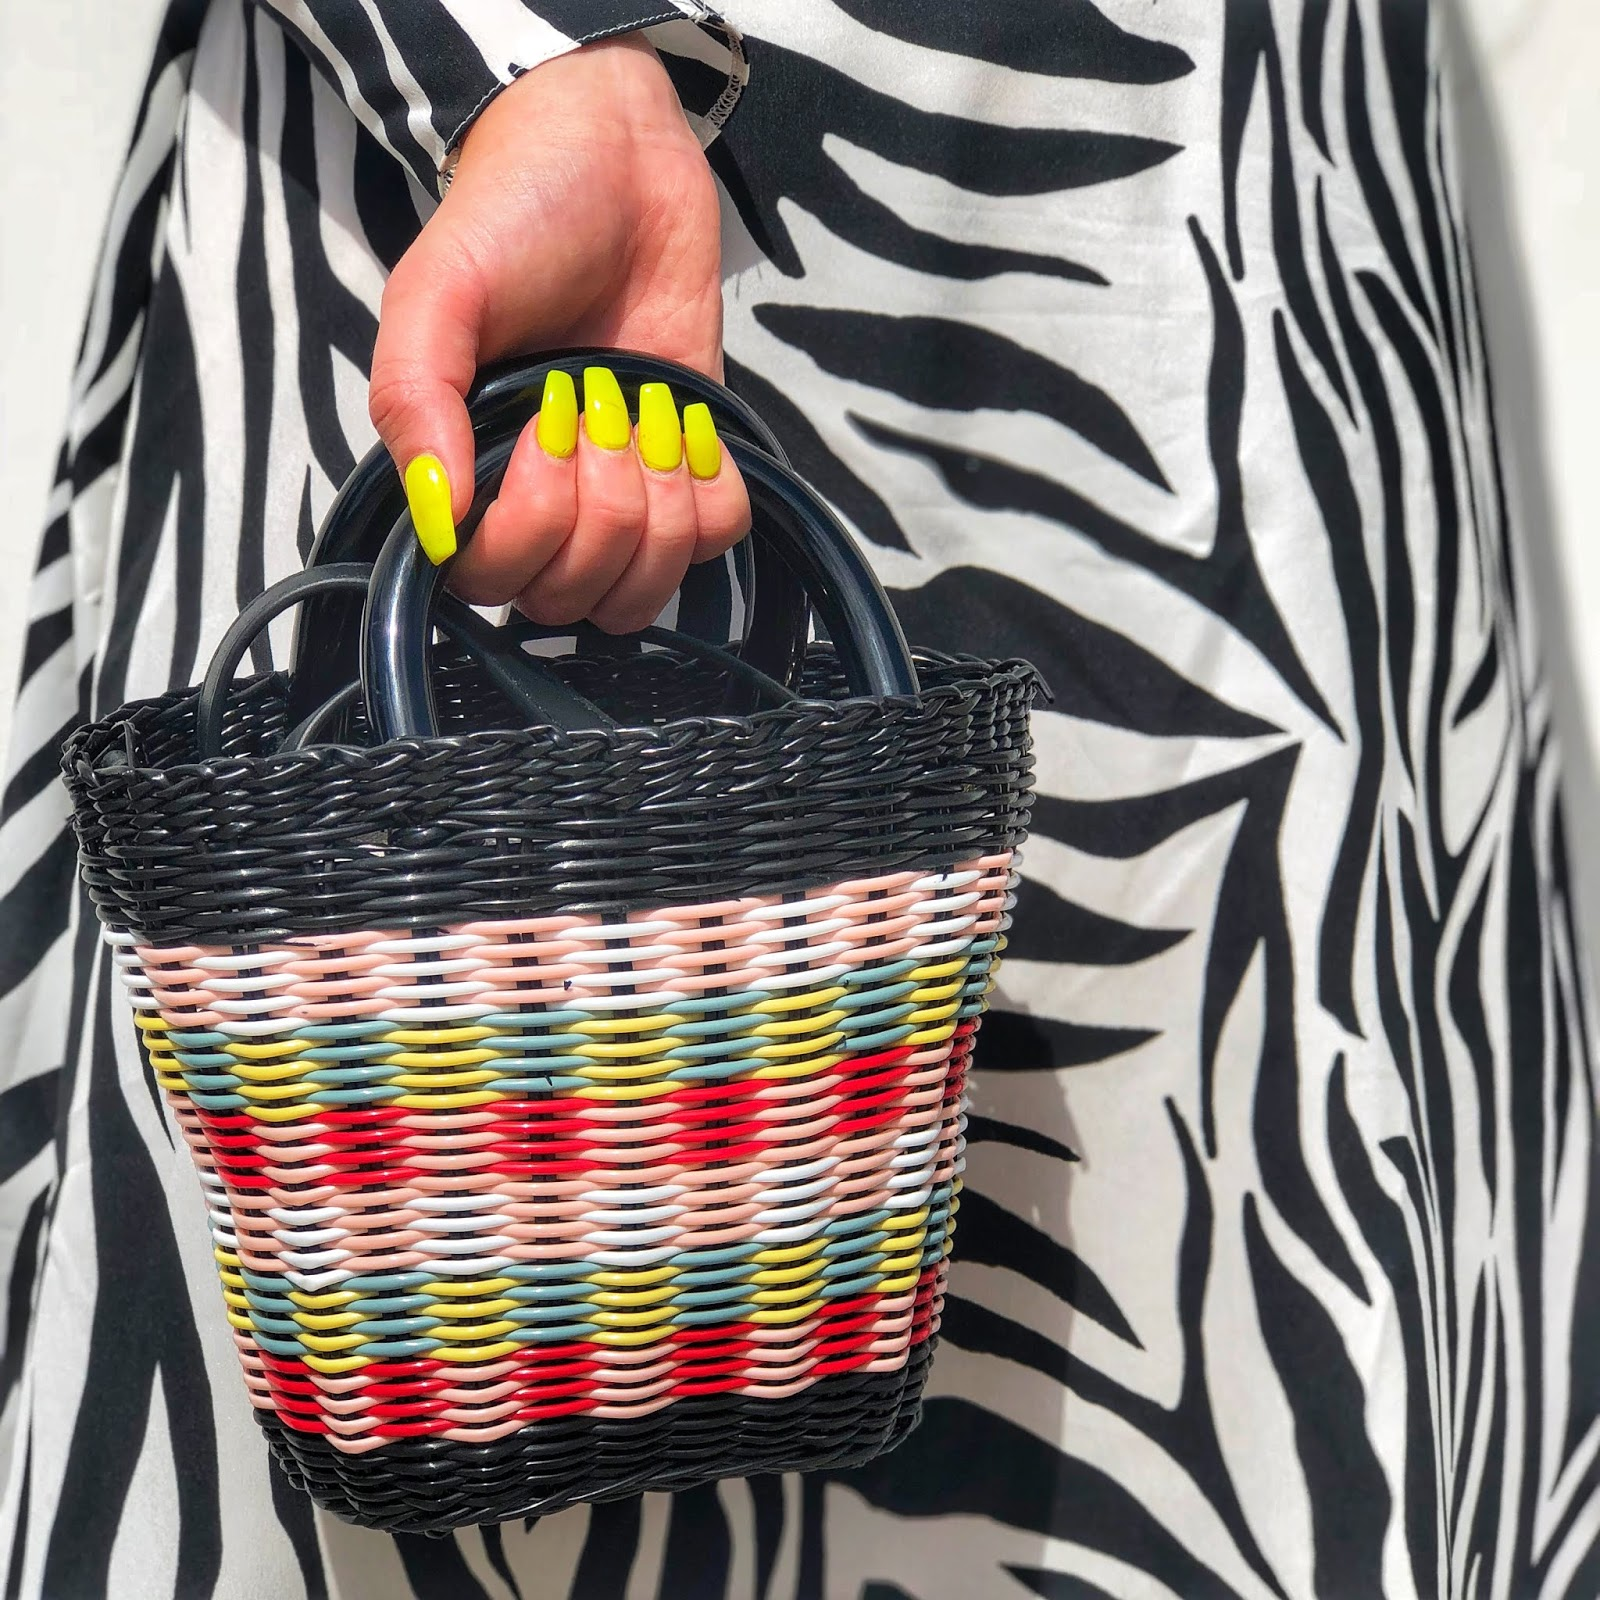 asos animal print, asos zebra dress, zebra dress, asos sold out zebra, asos leopard dress, how to style animal print, animal print budget, cheap zebra dress, zara sold out bag, transitions style, neon yellow nails